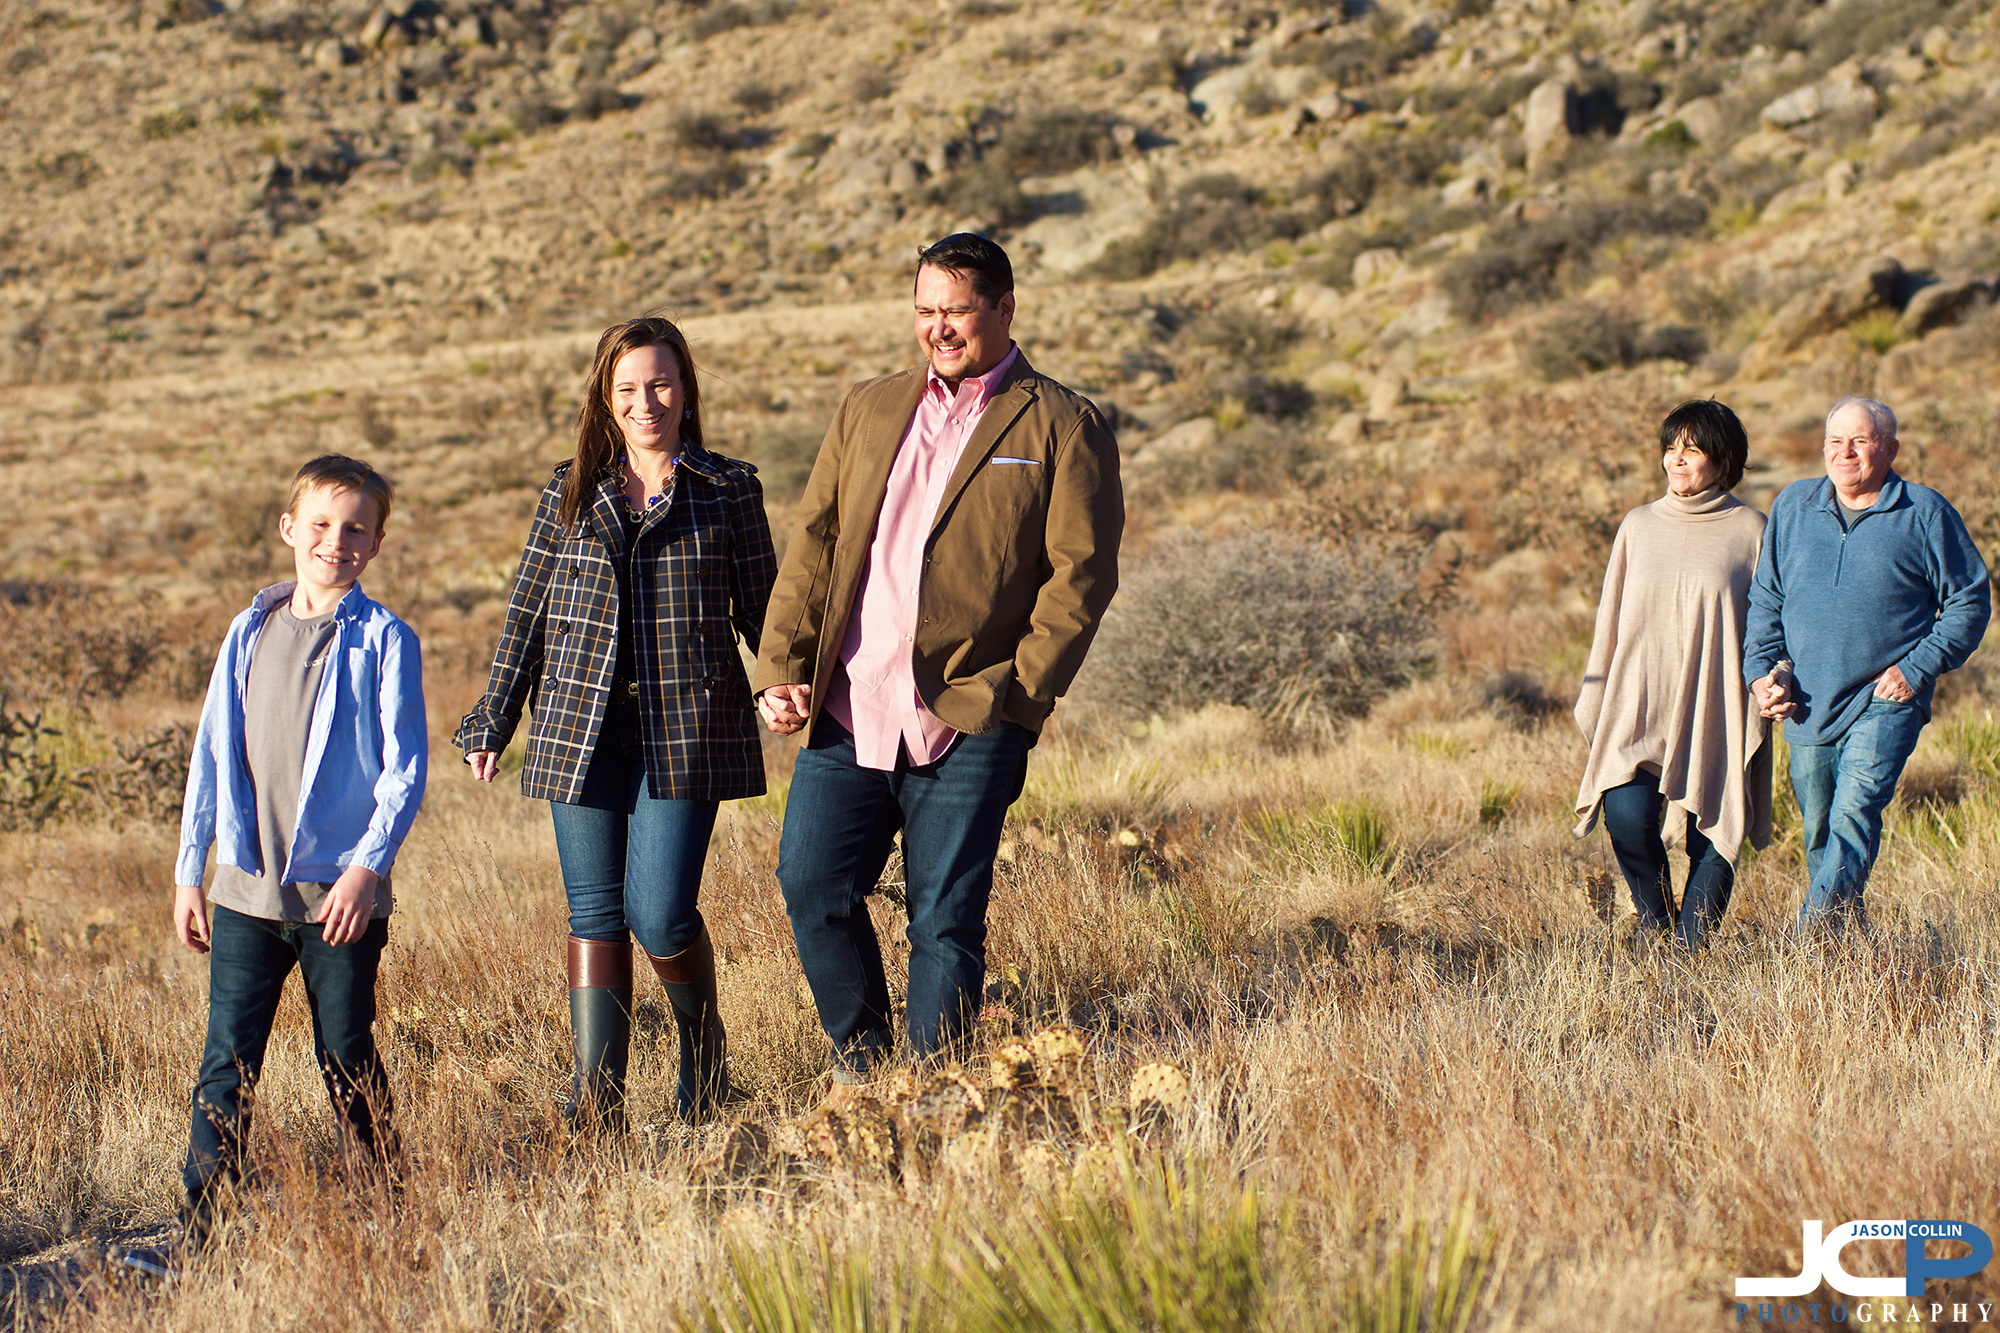 Sandia Mountains family portrait walking the trails in Albuquerque New Mexico - Nikon D7200 with Nikkor 80-200mm @ f/4 1/500th ISO 125 natural light